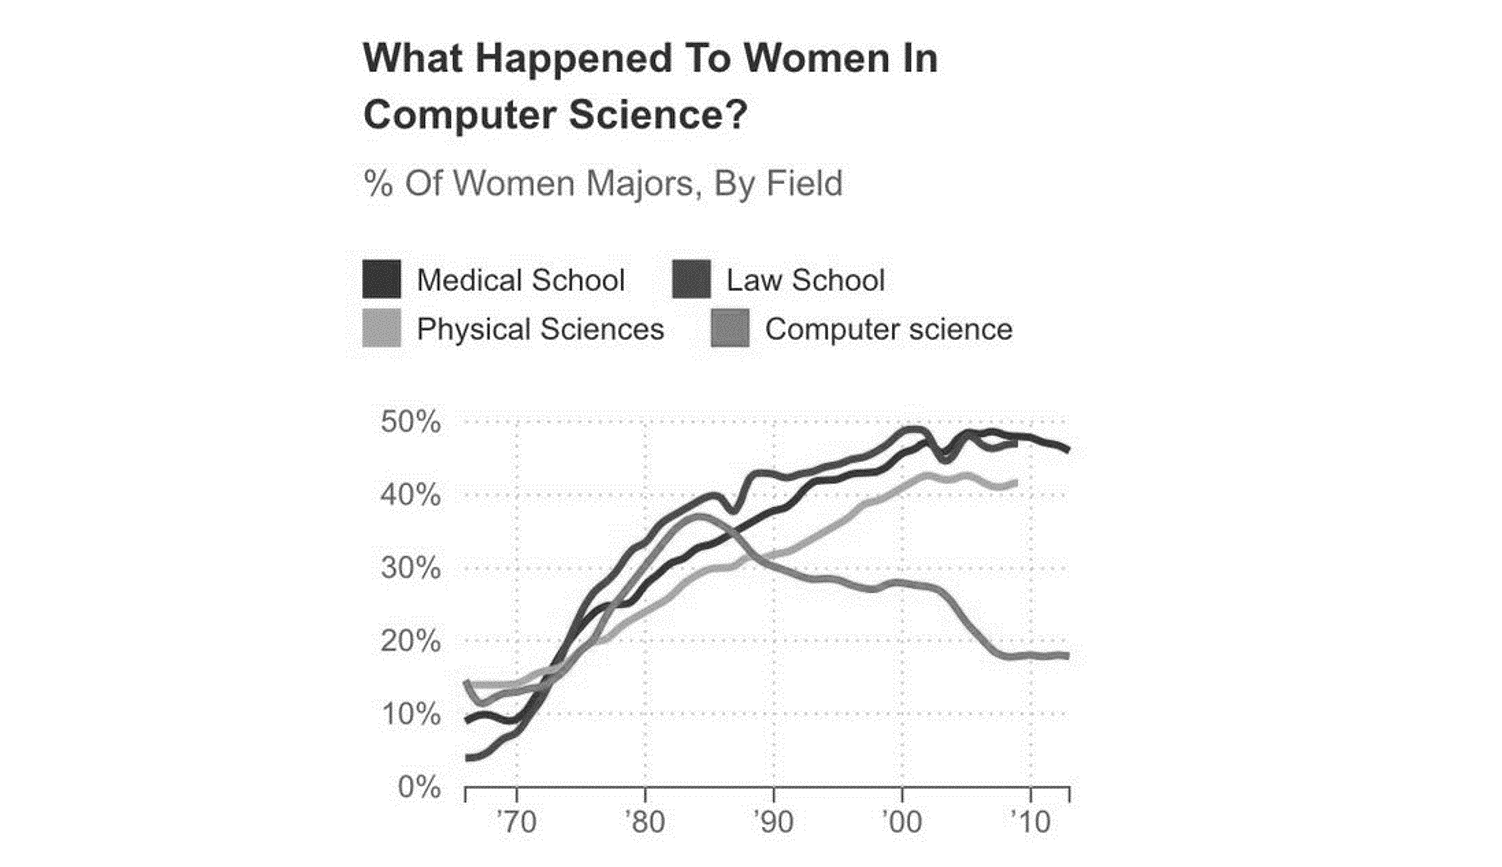 Grayscale version that's hard to read of graph showing decline of women majoring in computer science.